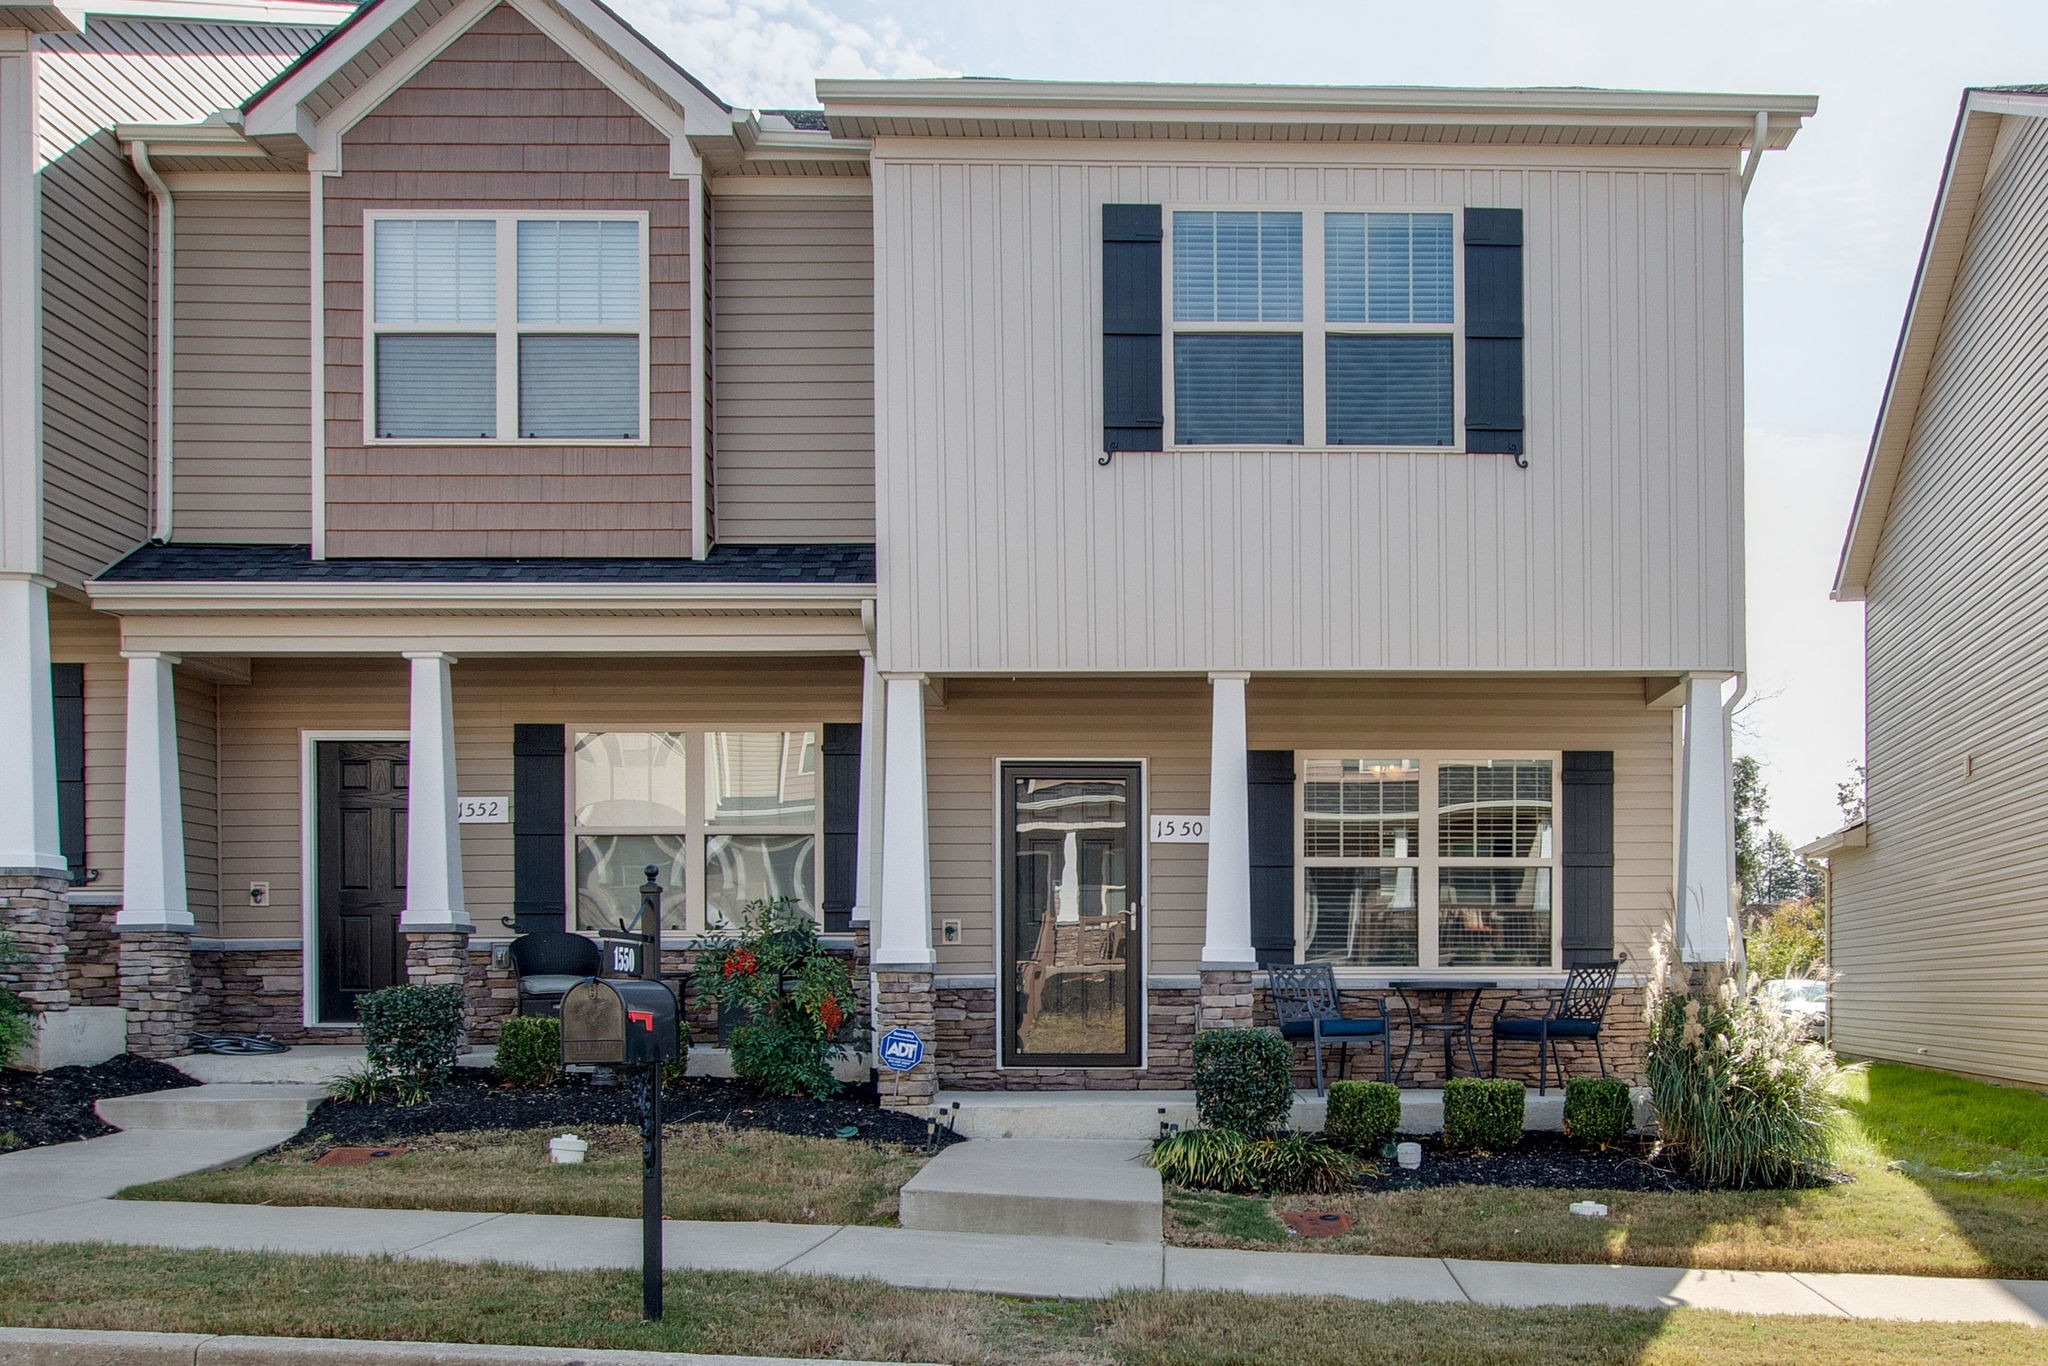 1550 Sprucedale Drive, Nashville-Antioch in Davidson County County, TN 37013 Home for Sale